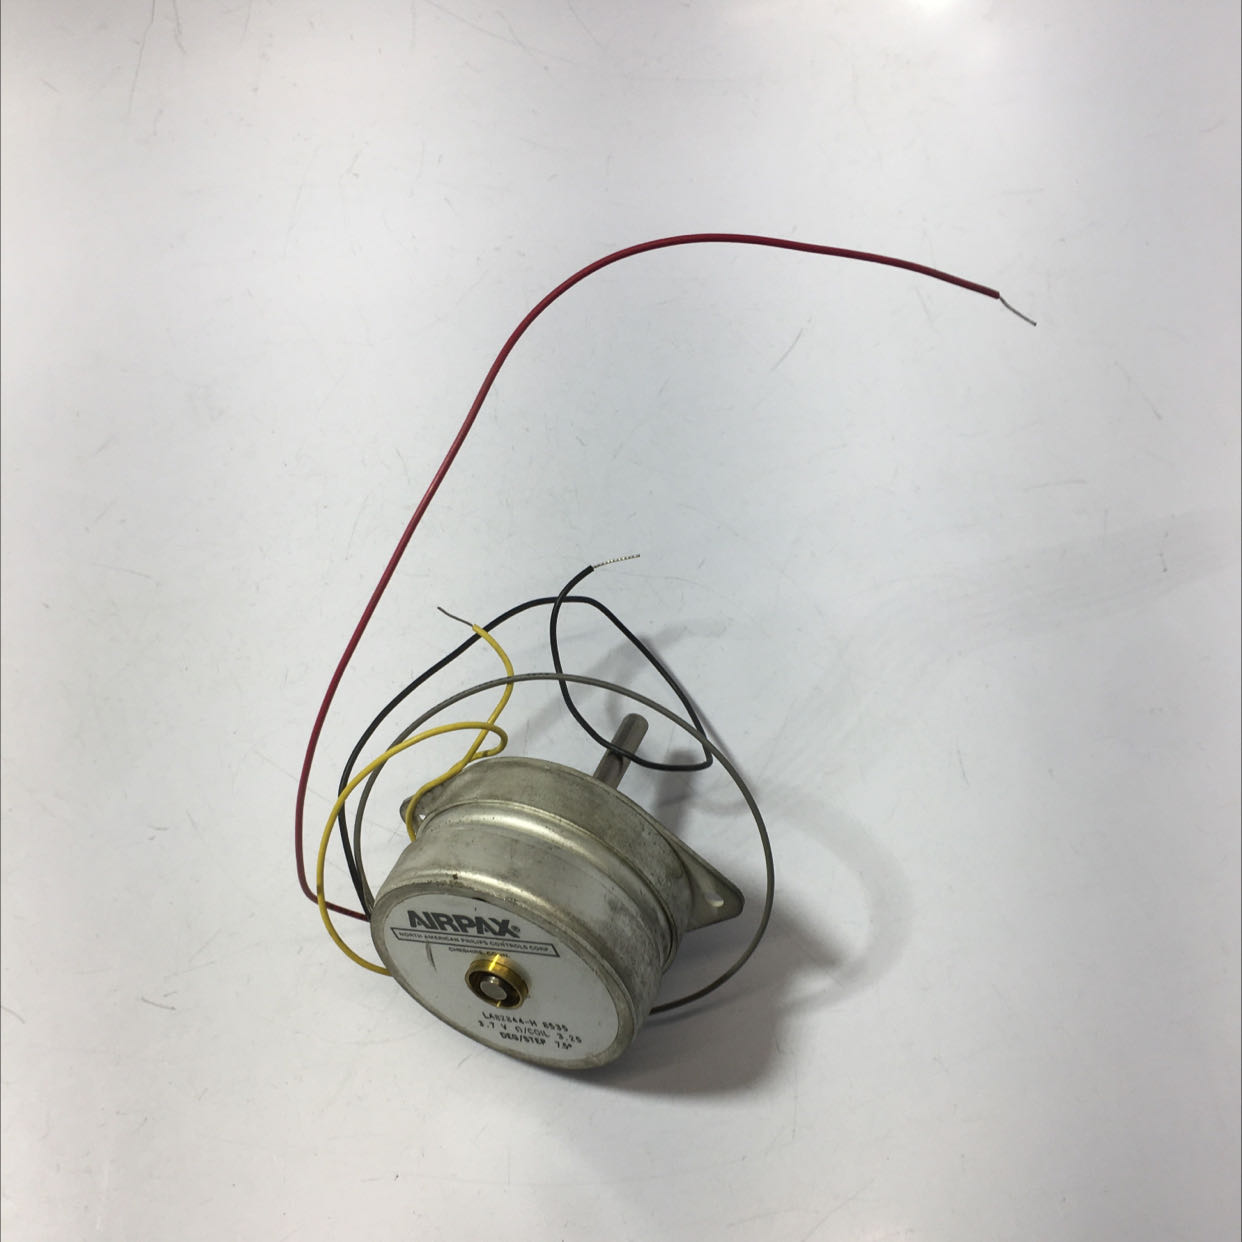 Airpax LA82844-H 8535 Stepper Motor 3.7V / 3.25 Coil